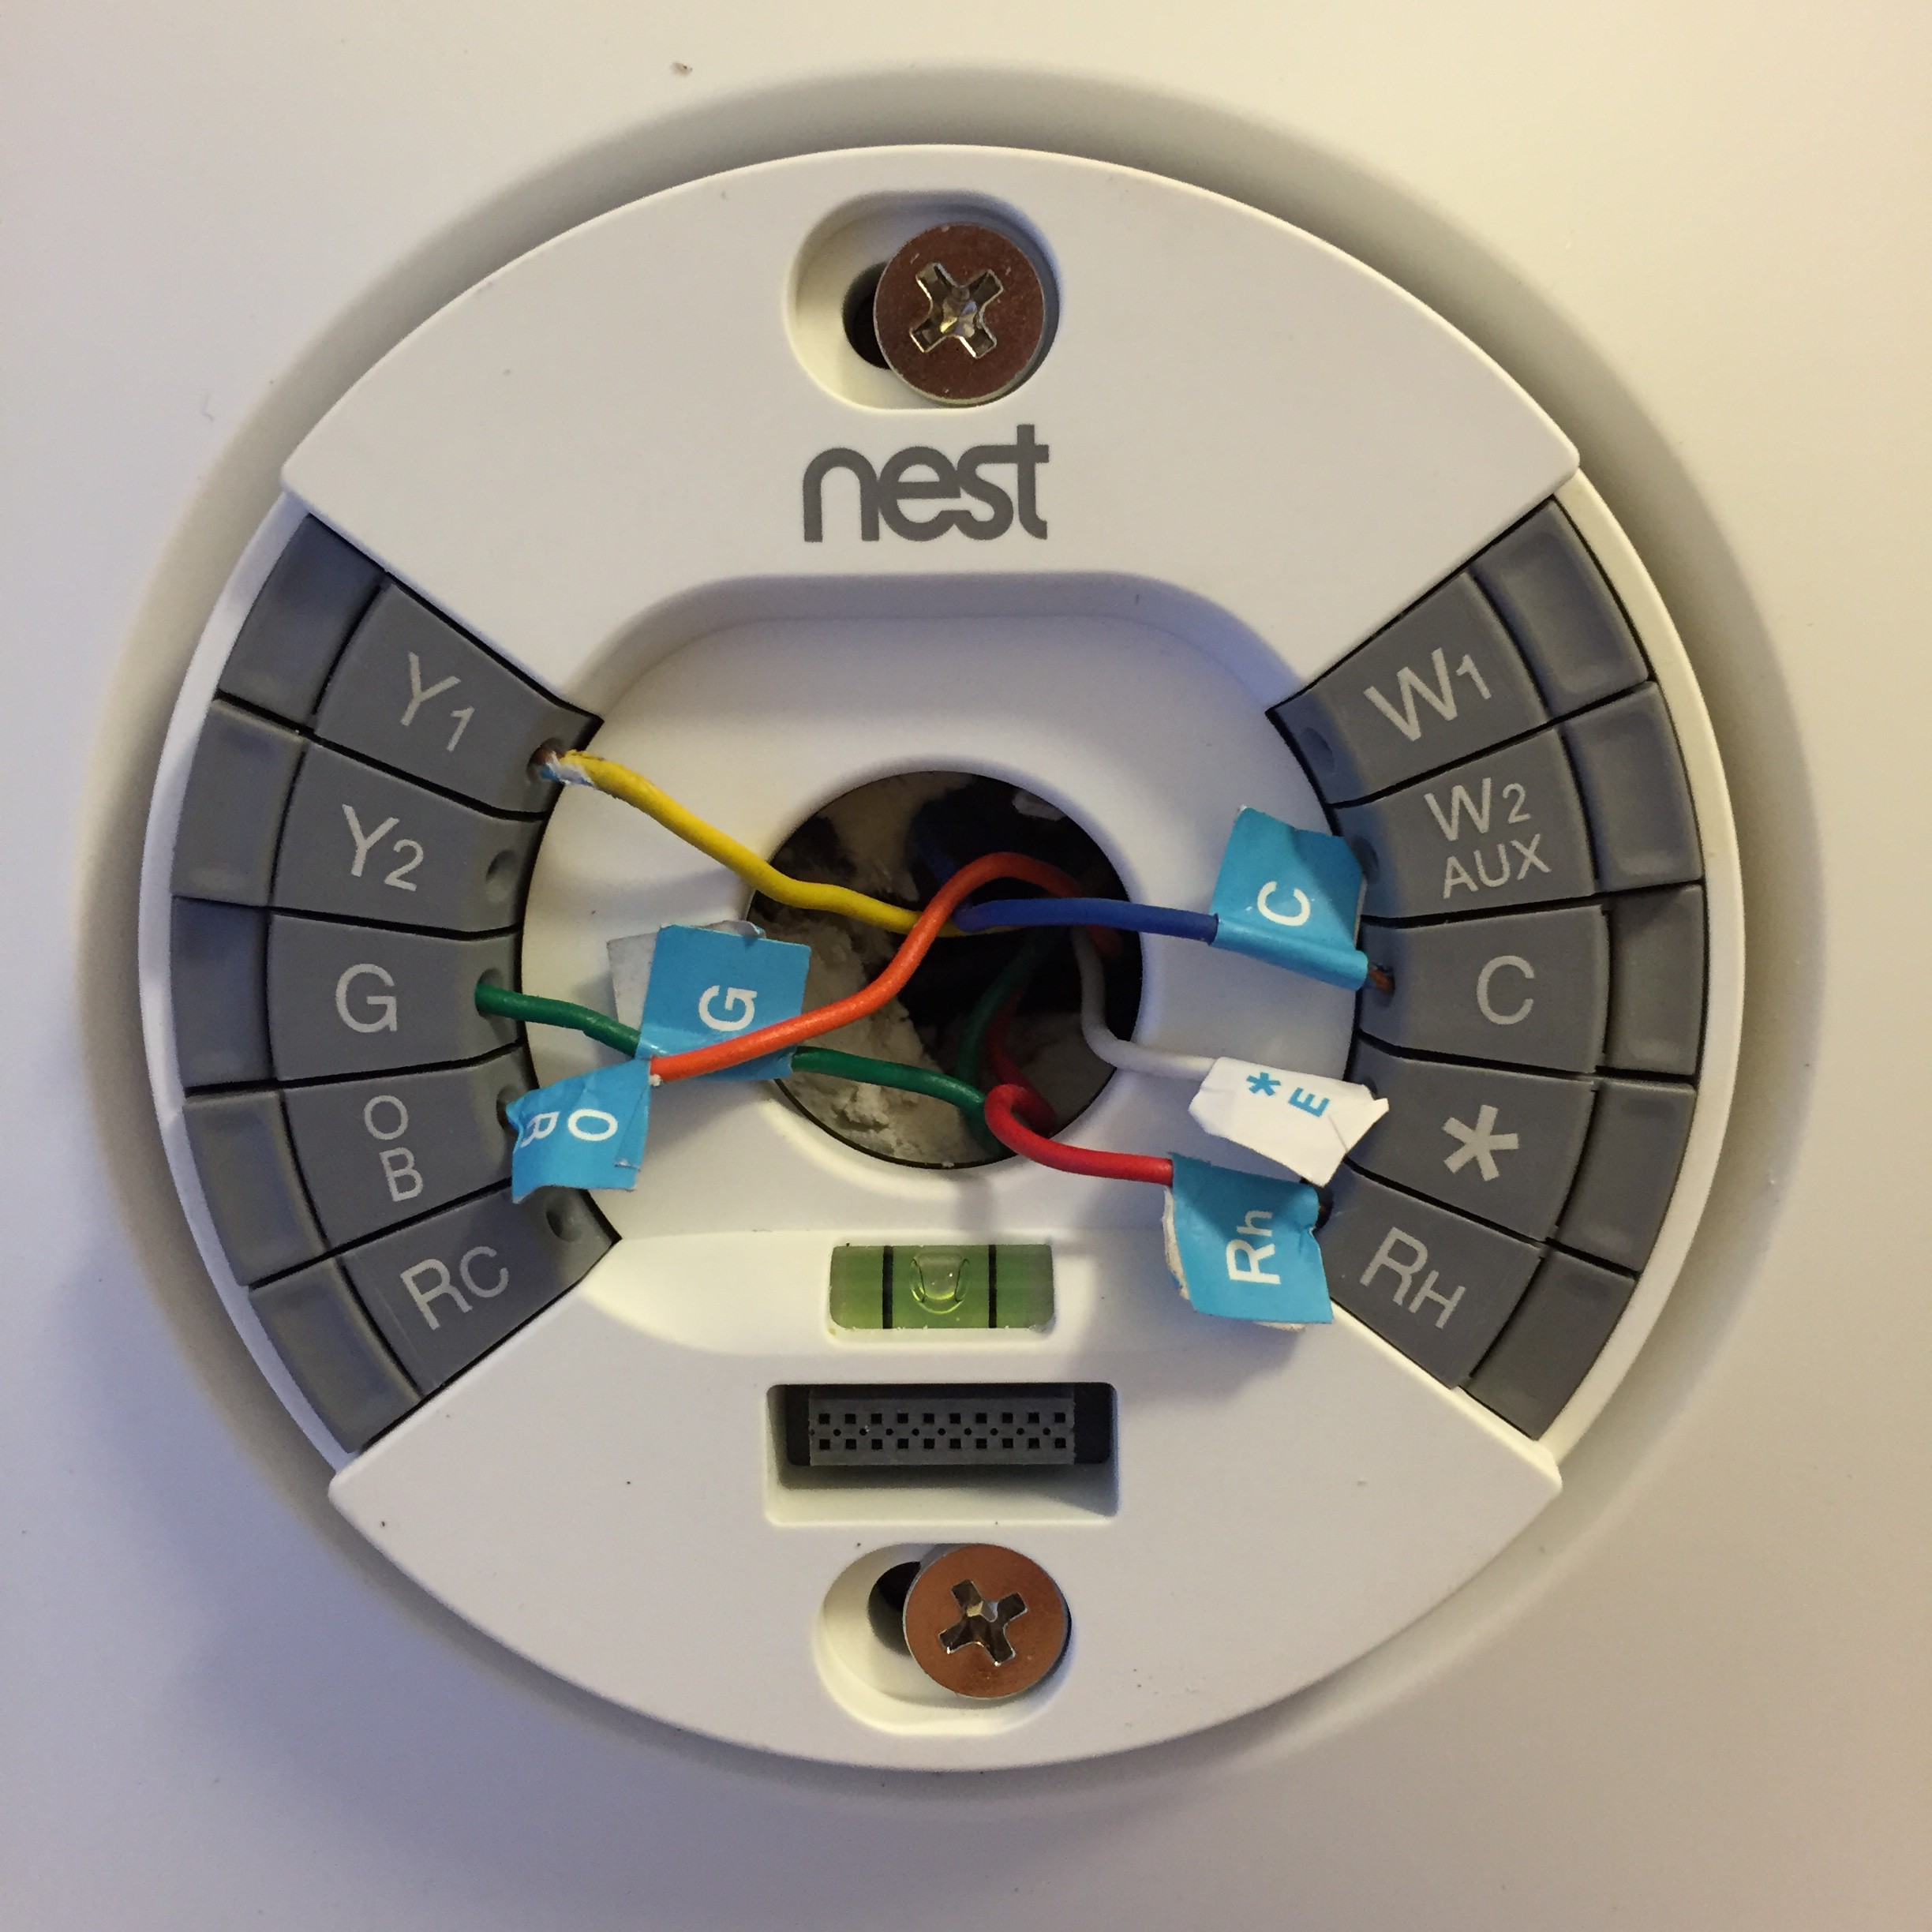 NEST Back Plate e1433878189266 the self learning nest thermostat comes to the sauser home! nest thermostat heat pump wiring diagram at webbmarketing.co